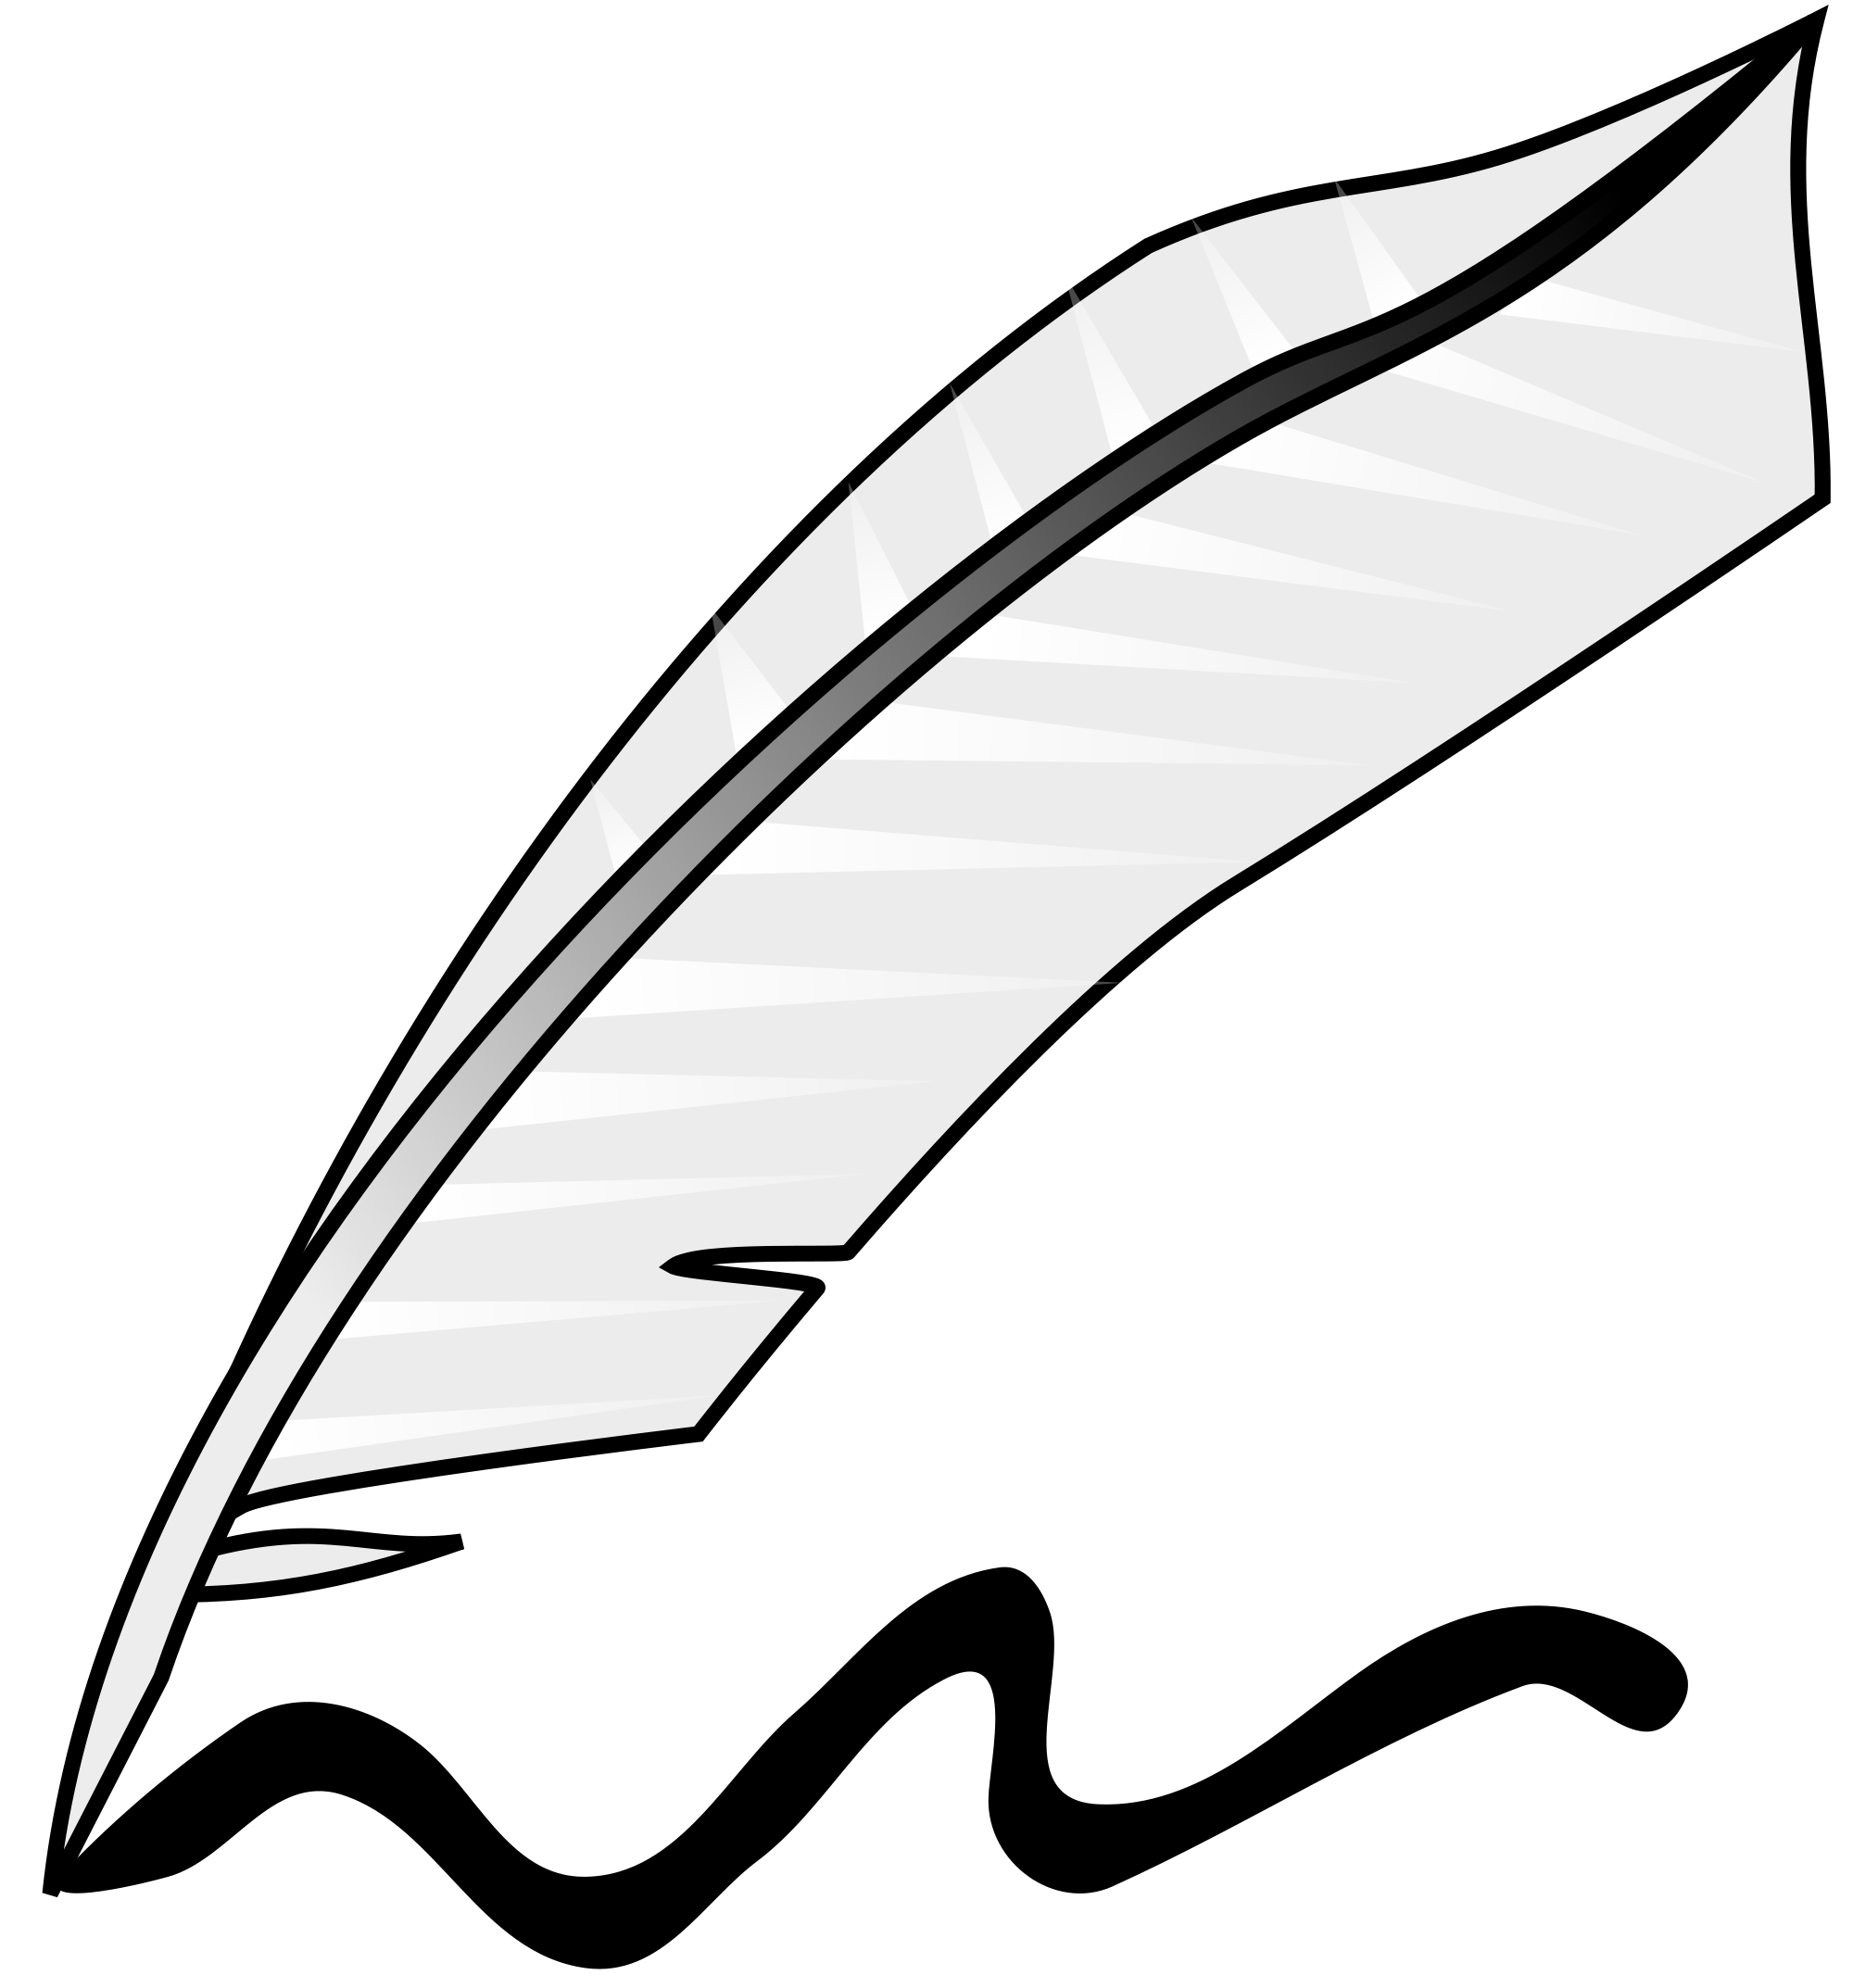 Feathers clipart svg. File feather writing wikimedia